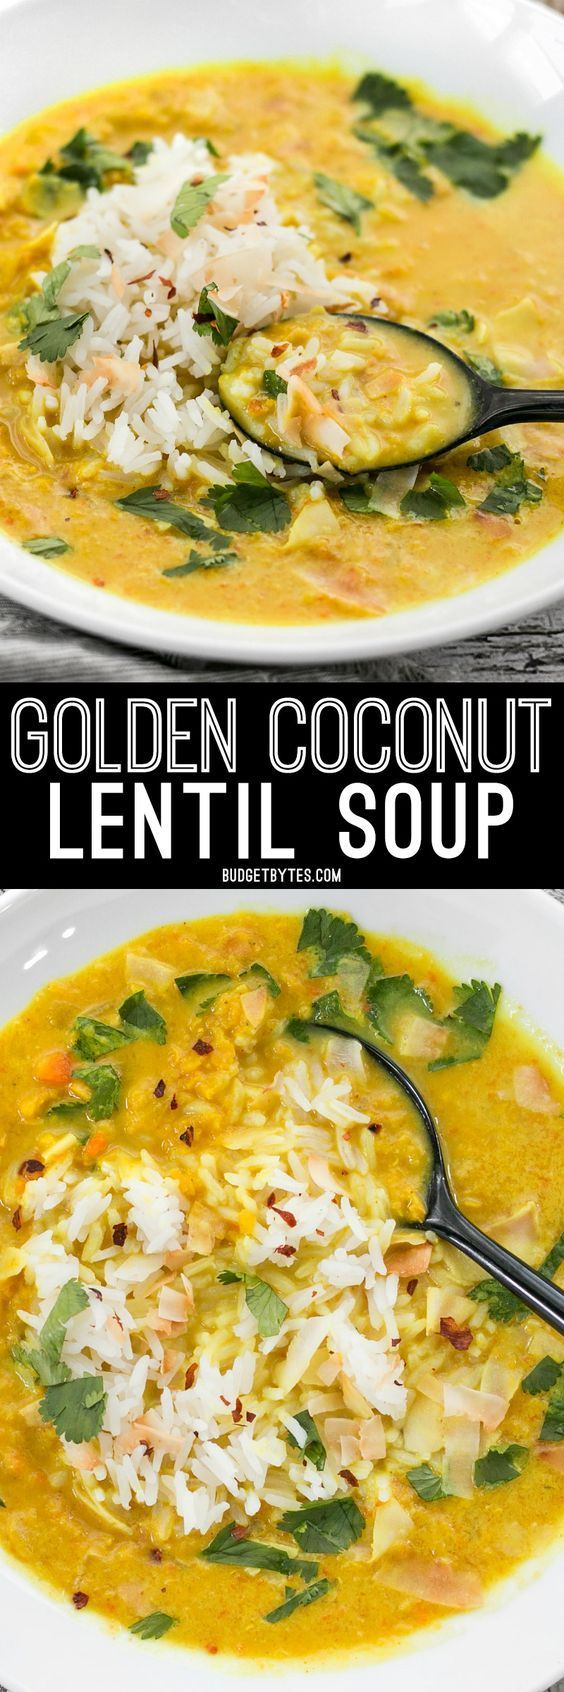 Golden Coconut Lentil Soup is a light and fresh bowl with vibrant turmeric and a handful of fun toppings. @budgetbytes